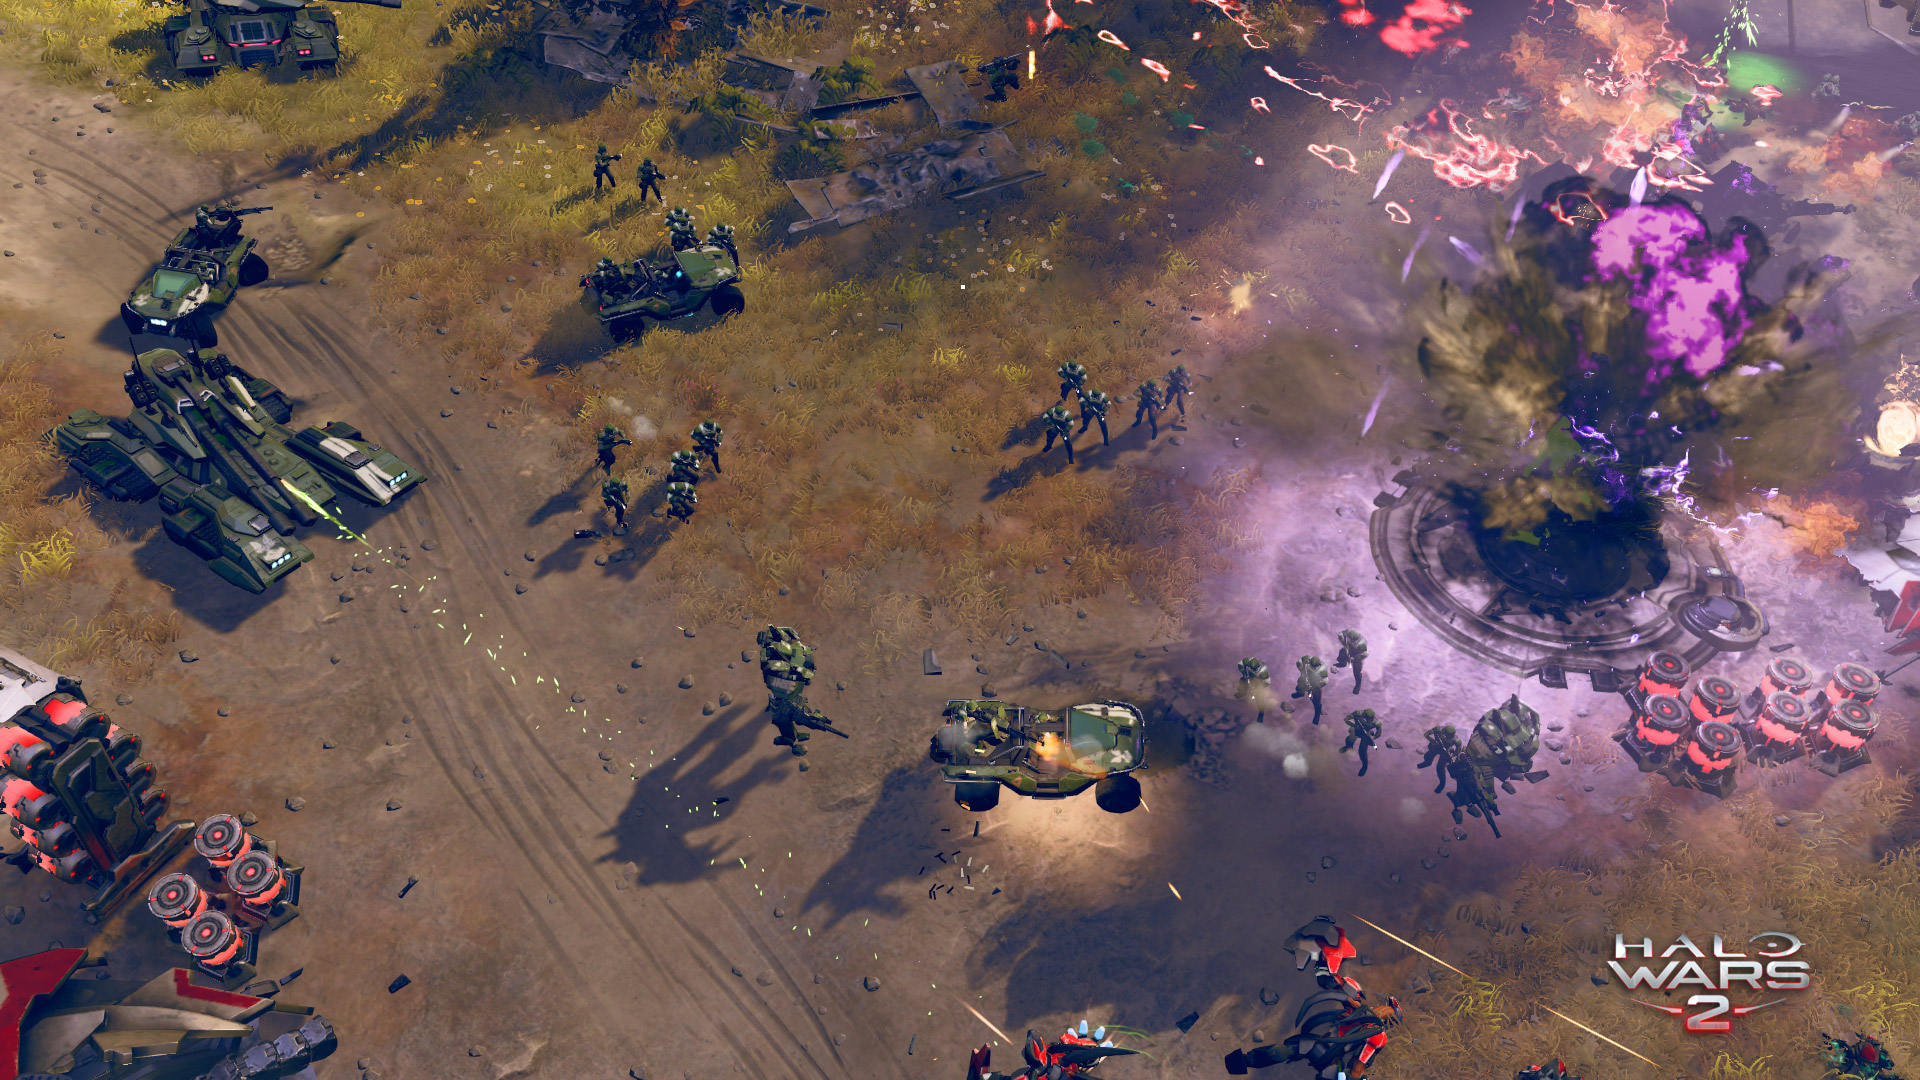 """Despite fan demand, the Halo Wars 2 devs are """"unable to commit"""" to more support"""